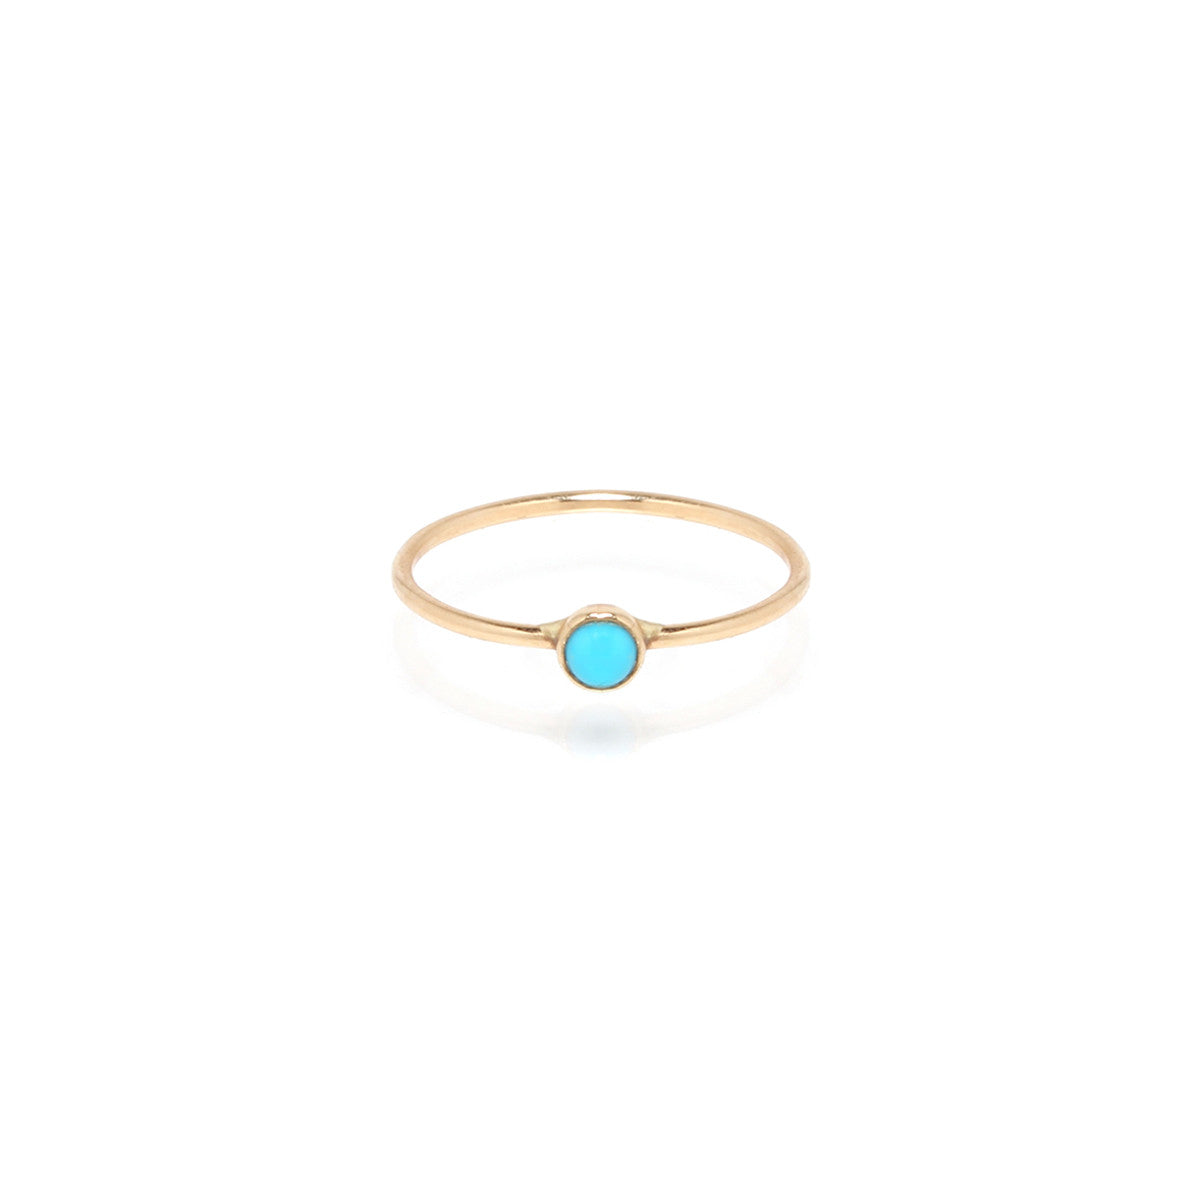 Zoë Chicco 14kt Large Bezel Set Turquoise Ring